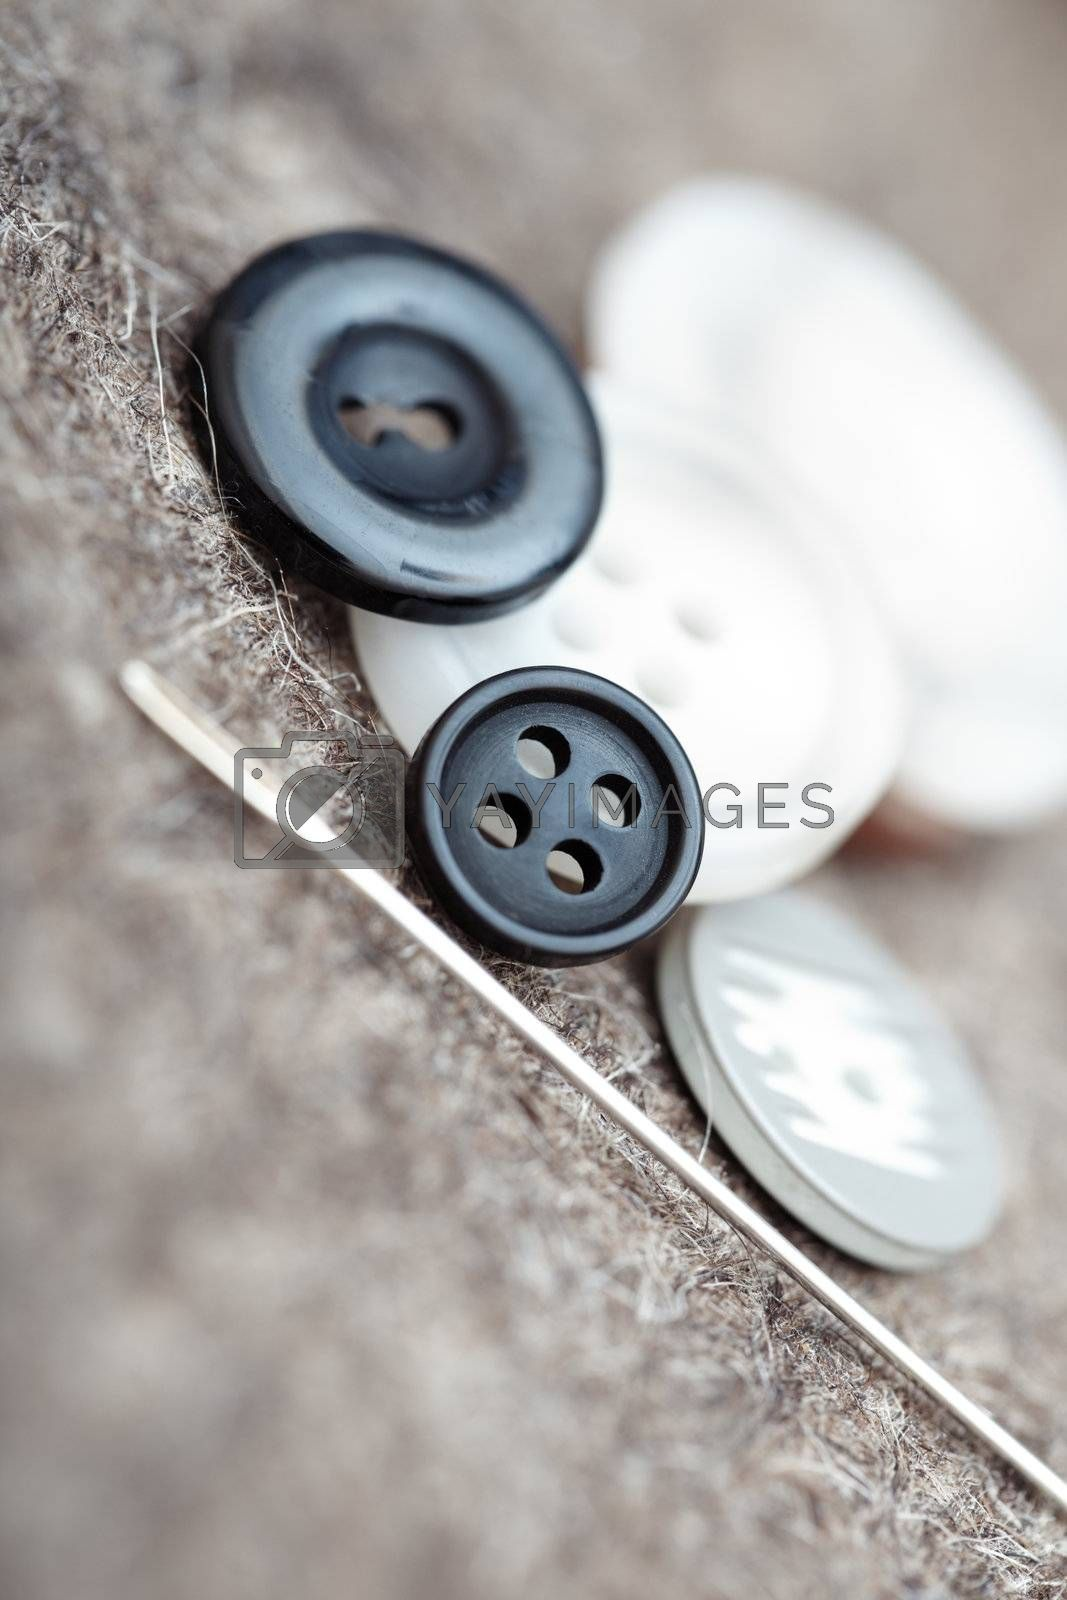 Buttons and sewing needle. Extremely close-up photo with shallow depth of field